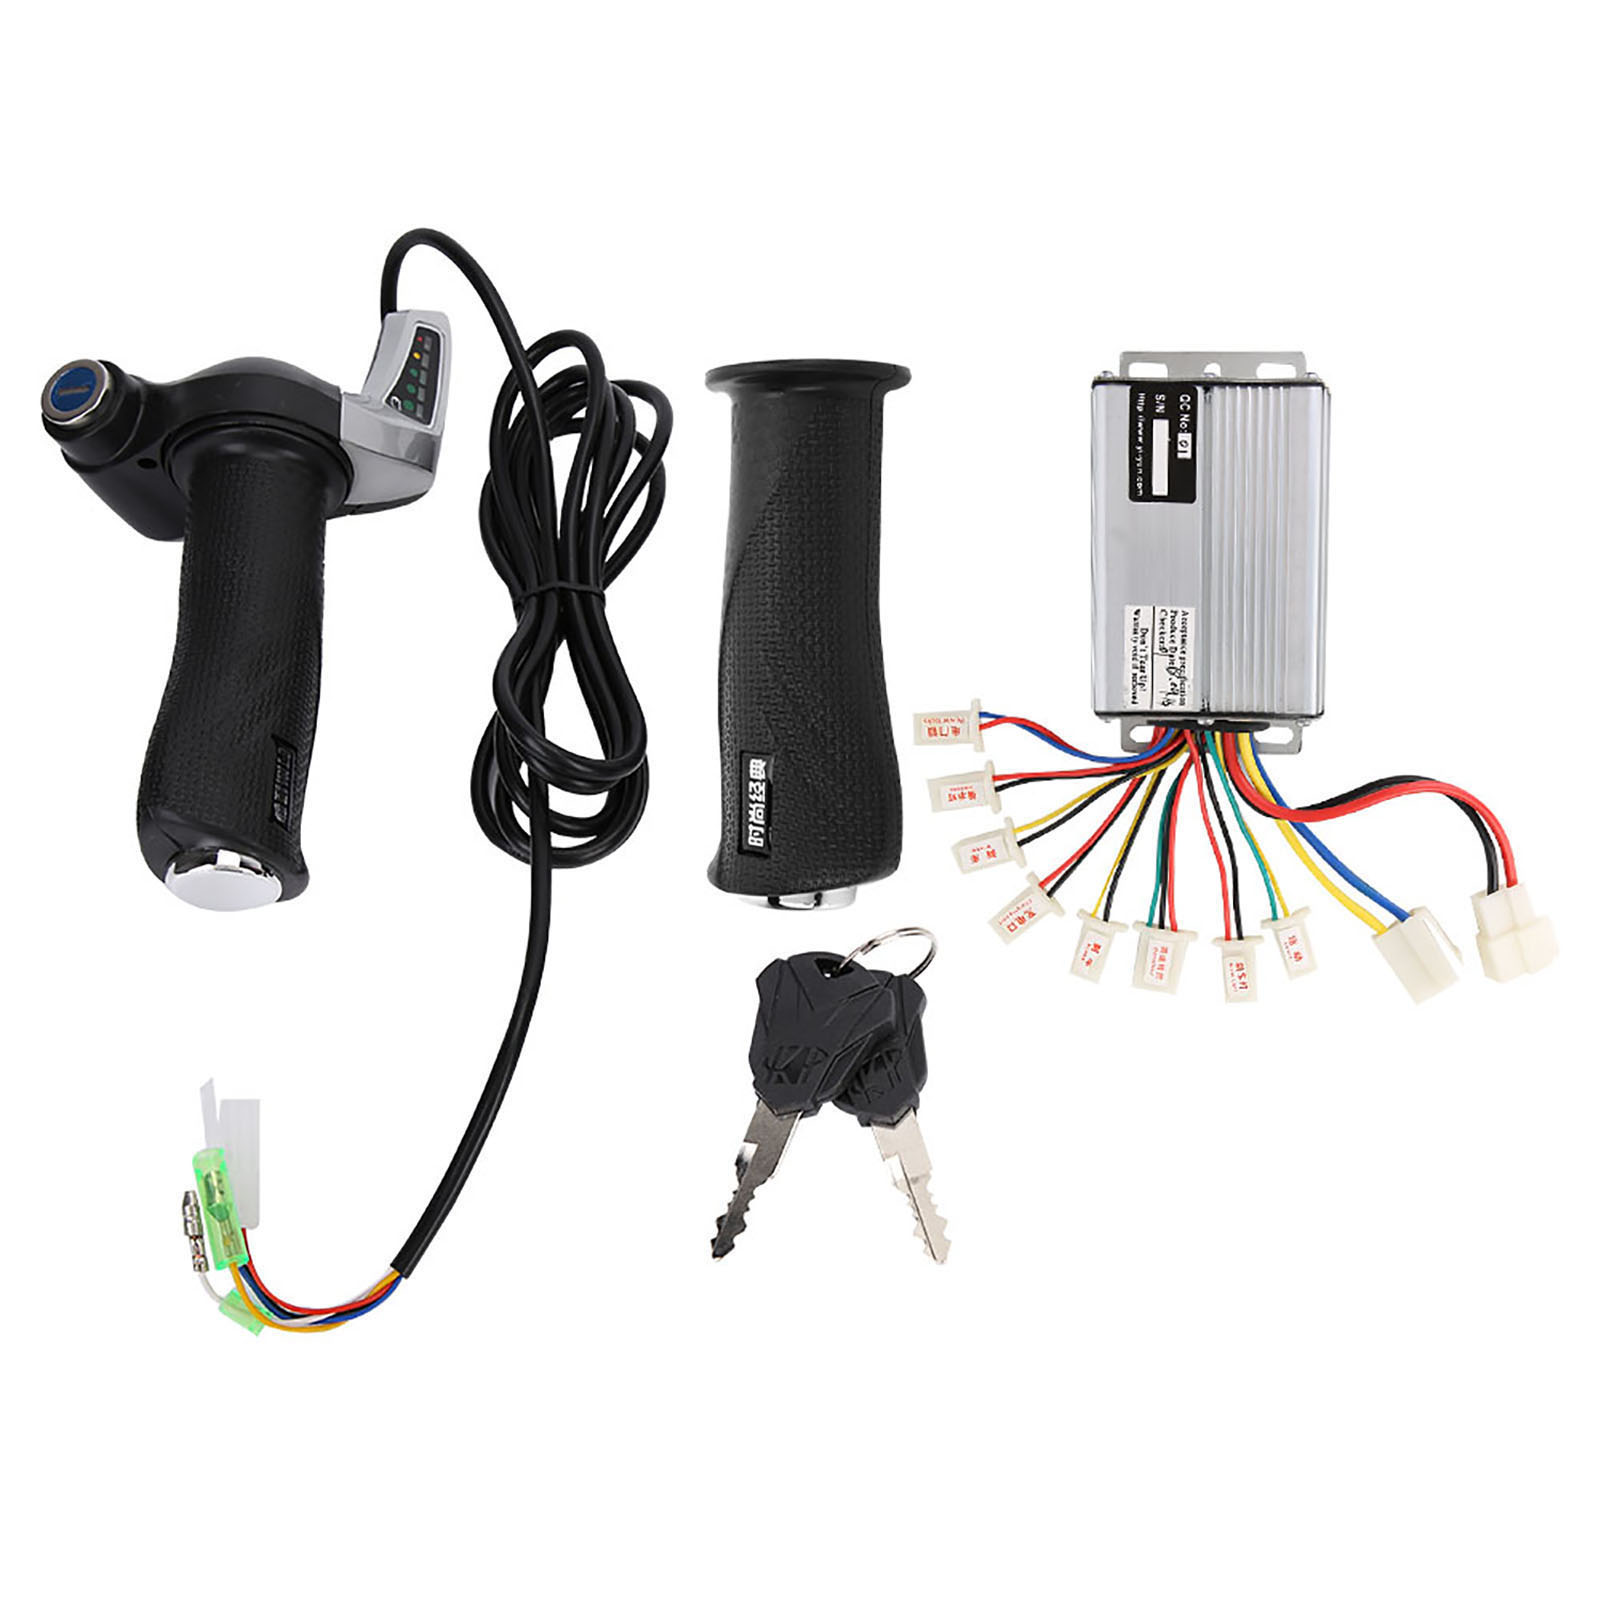 500W-1000W-Motor-Brushed-Speed-Controller-Box-for-Electric-Bicycle-amp-Scooter-Bike thumbnail 27